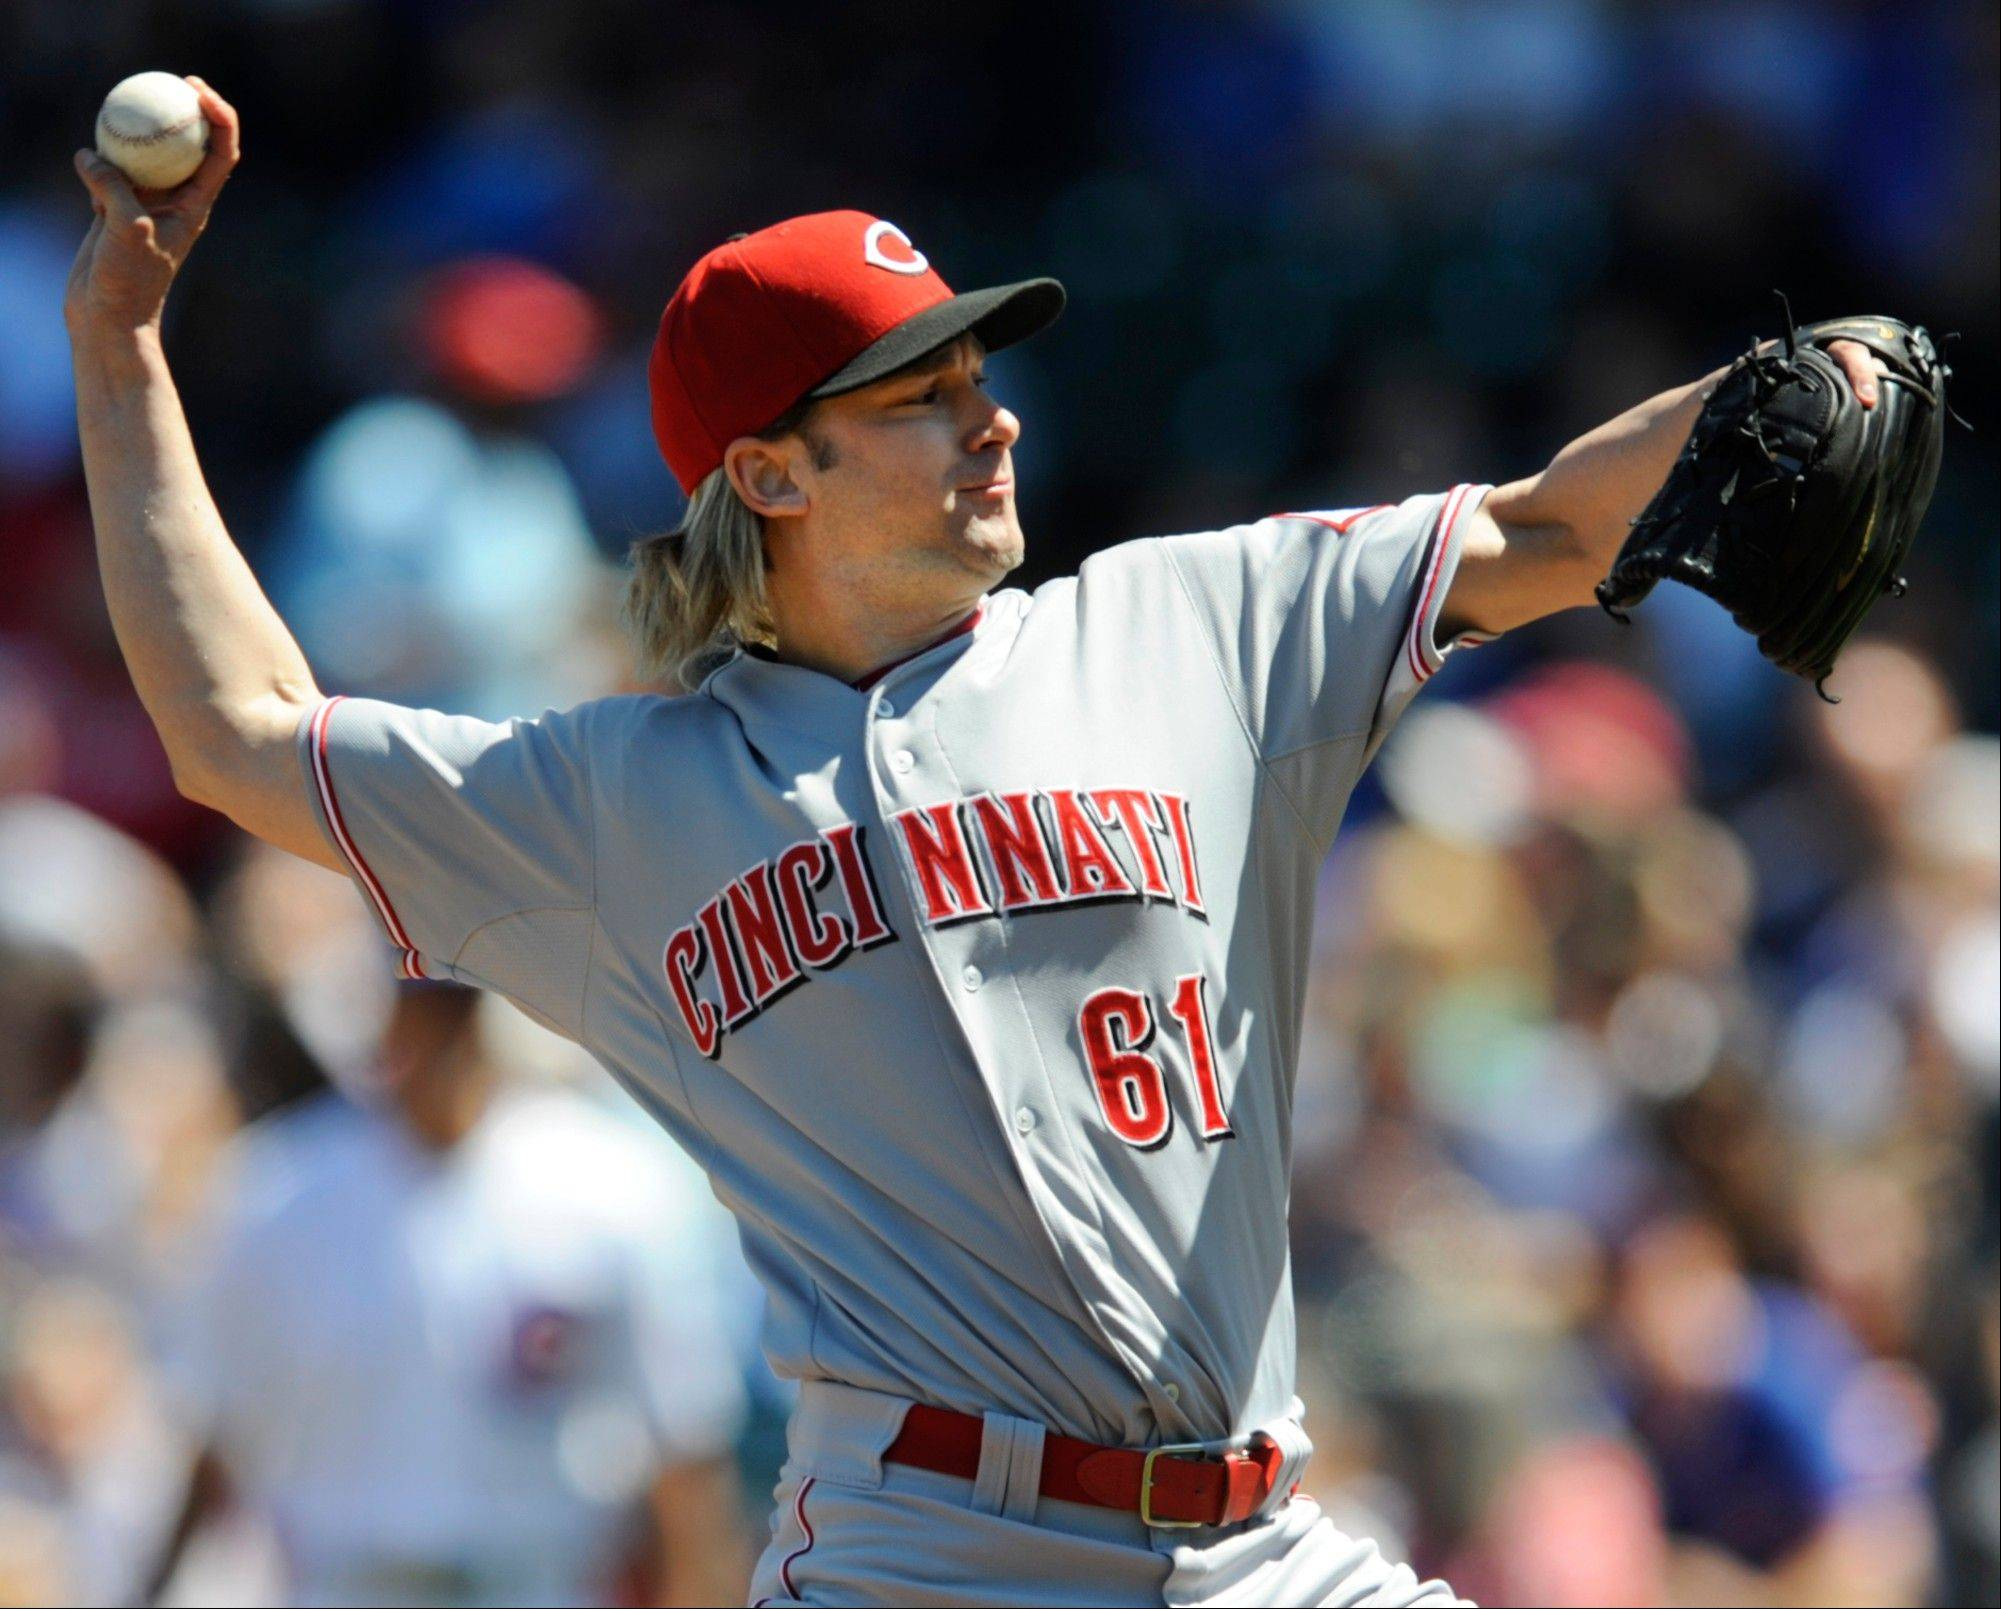 Cincinnati Reds starter Bronson Arroyo is one of Len Kasper's favorite players outside who don't play for the Cubs